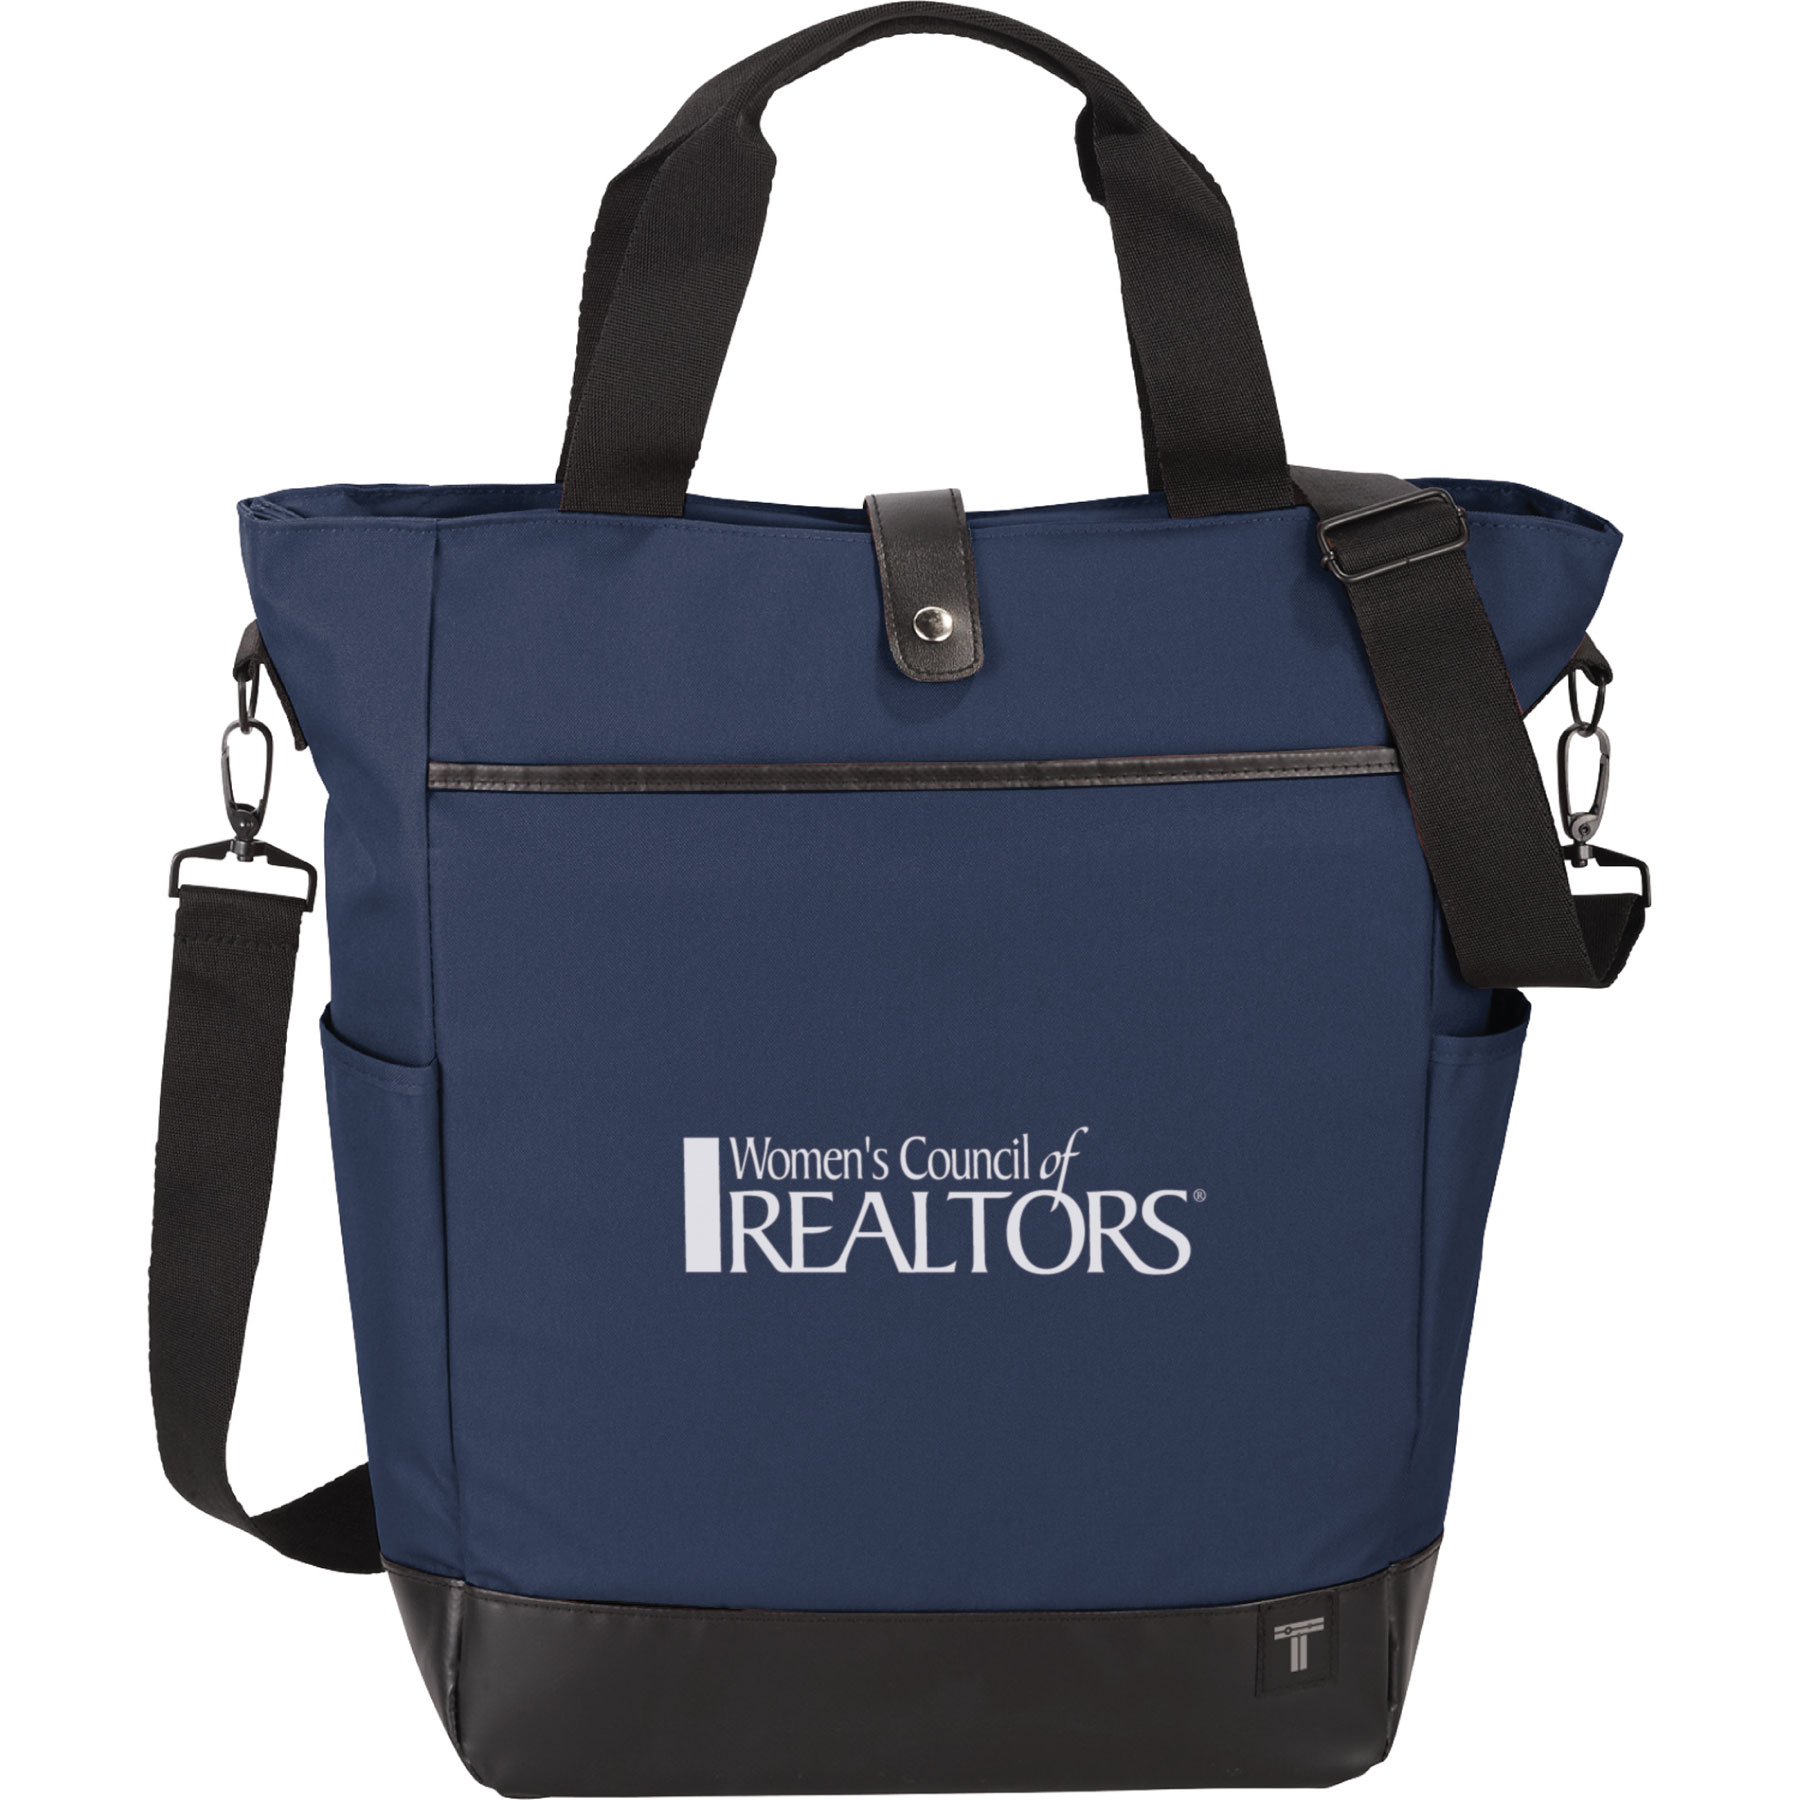 WCR Tranzip Tall 15 Computer Tote Totes,Computers,Tablets,Bags,Shoulders,Cases,Straps,Laptops,Macbooks,